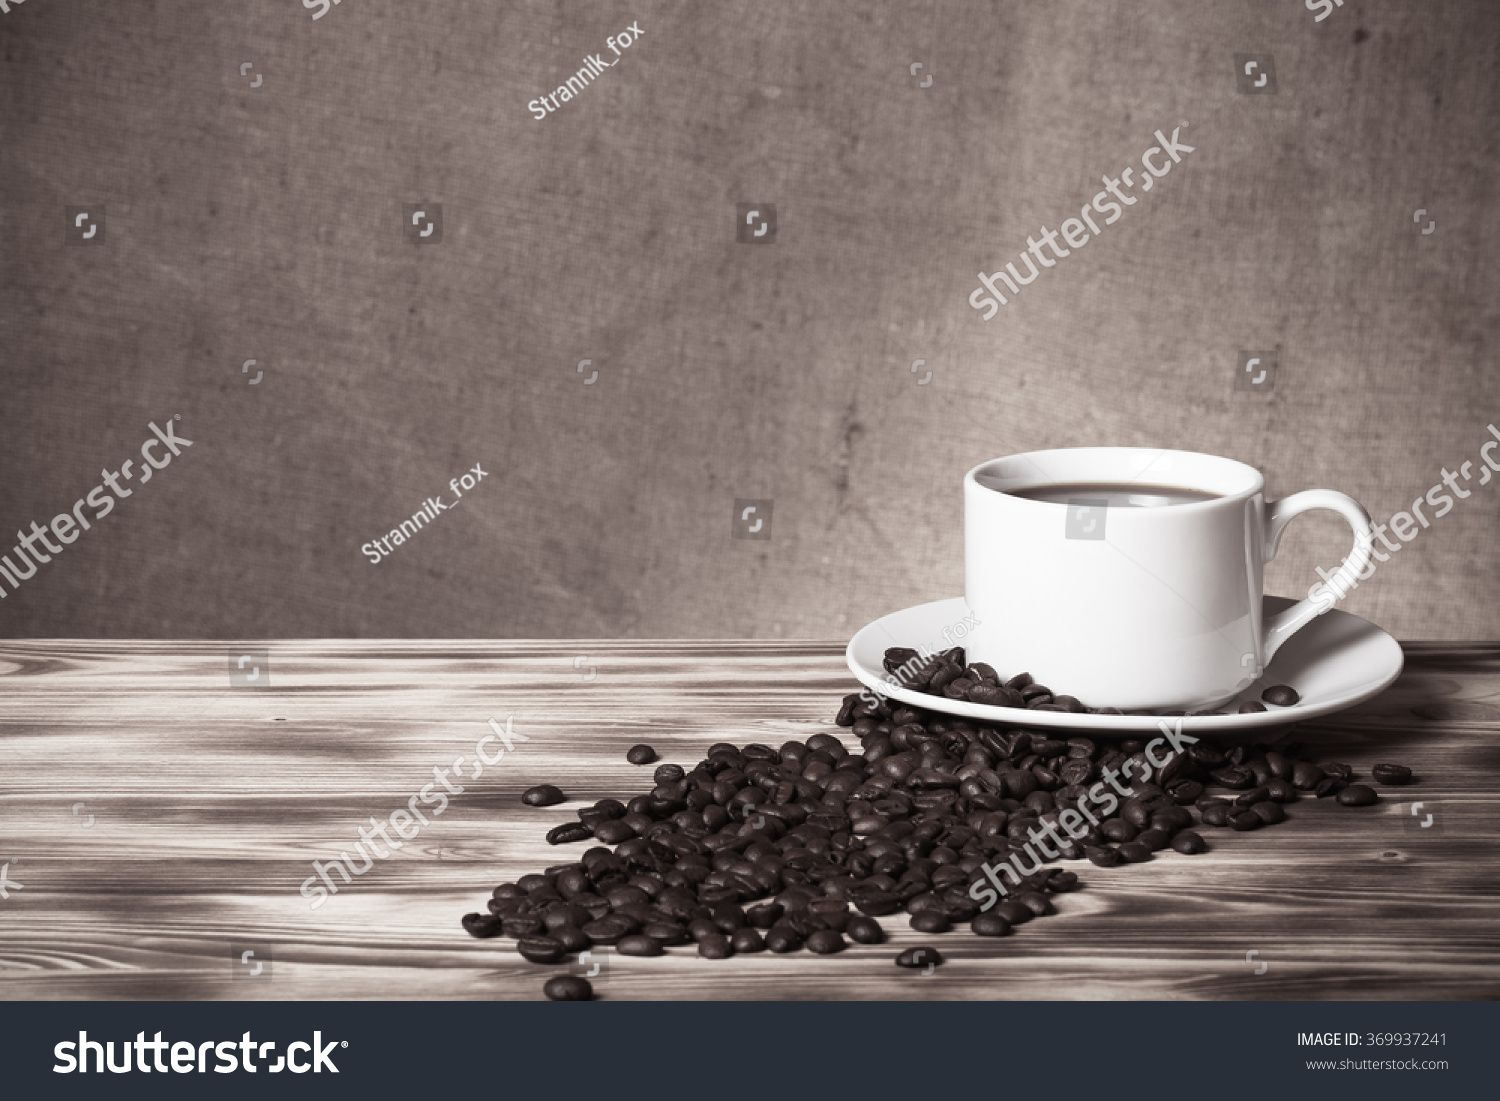 Coffee beans and coffee in white cup on wooden table